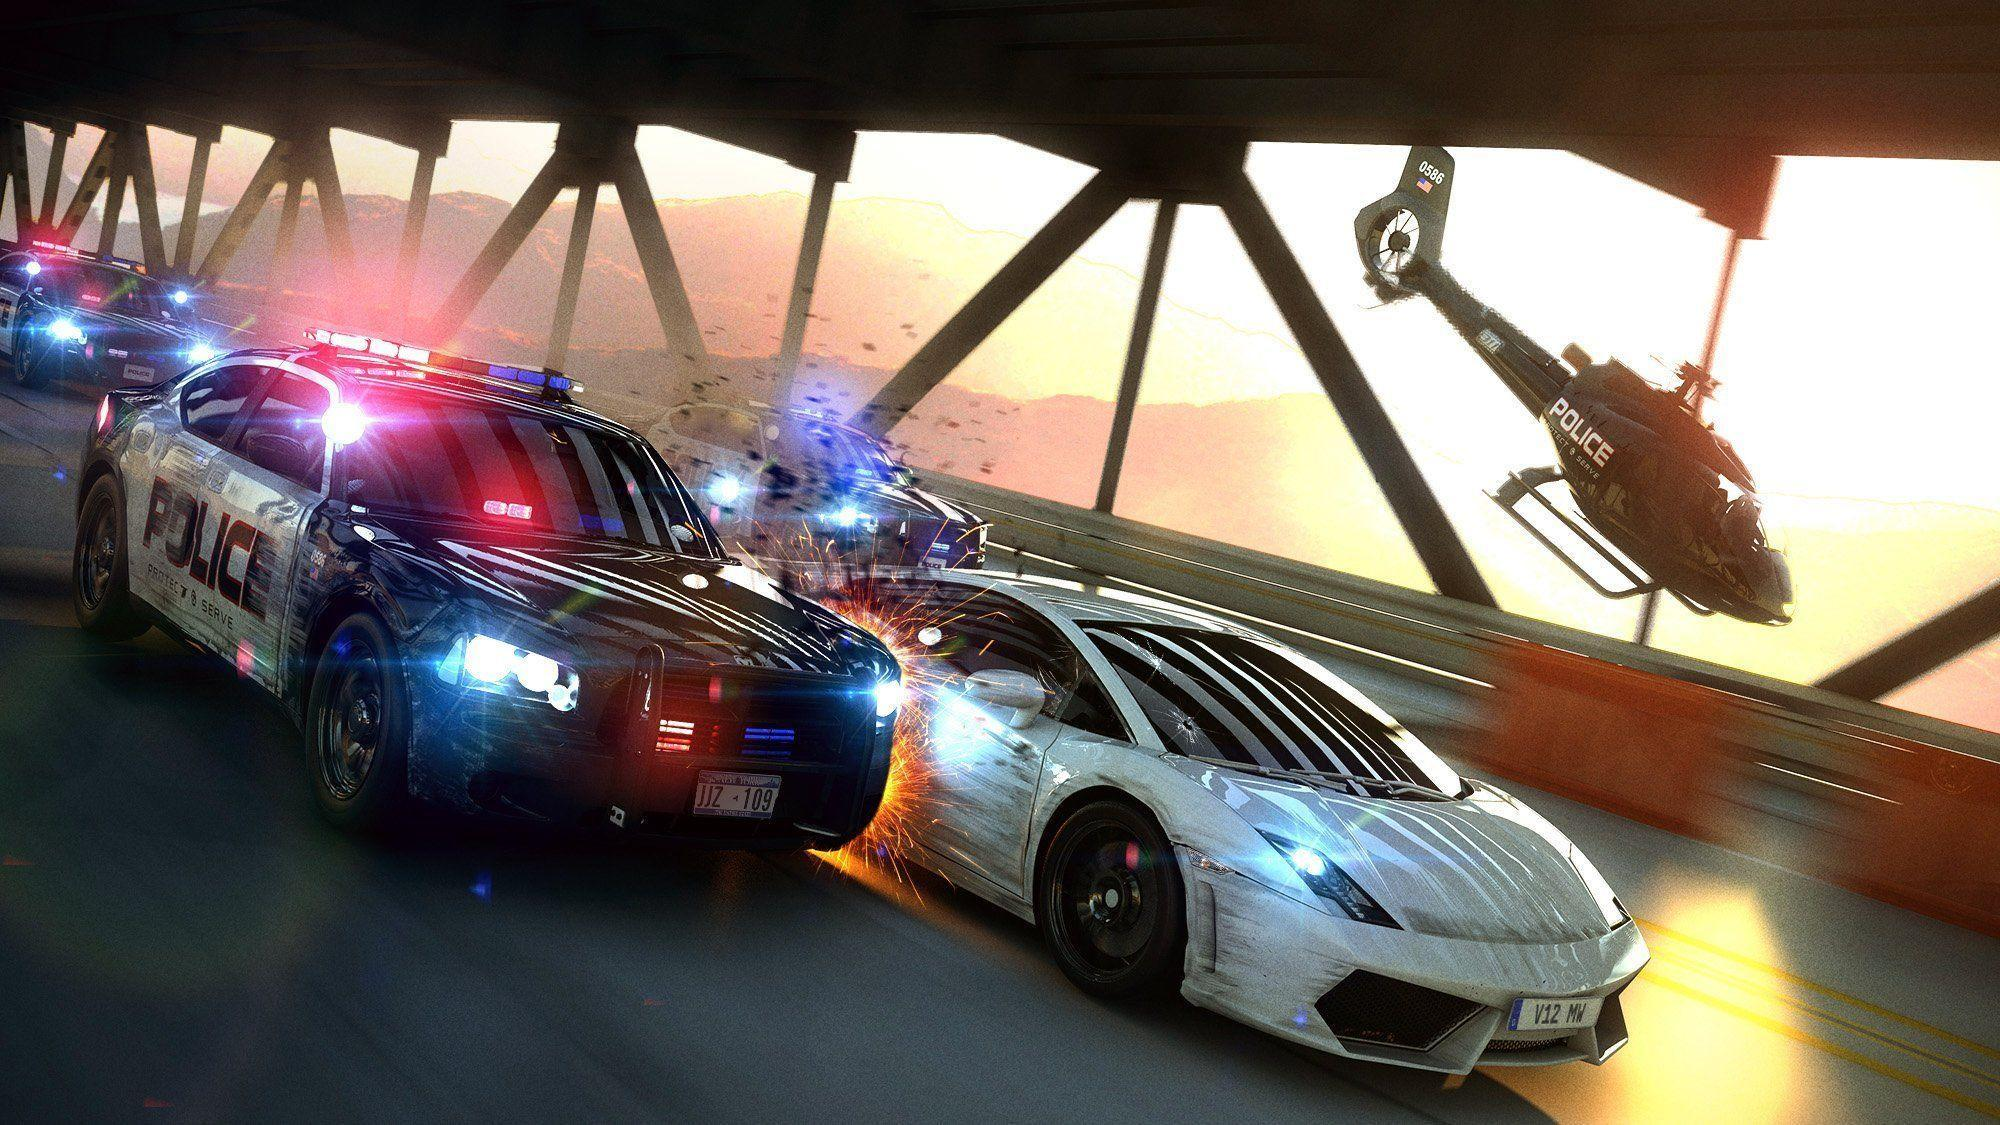 most wanted chase police cops bridge chase speed art HD wallpaper